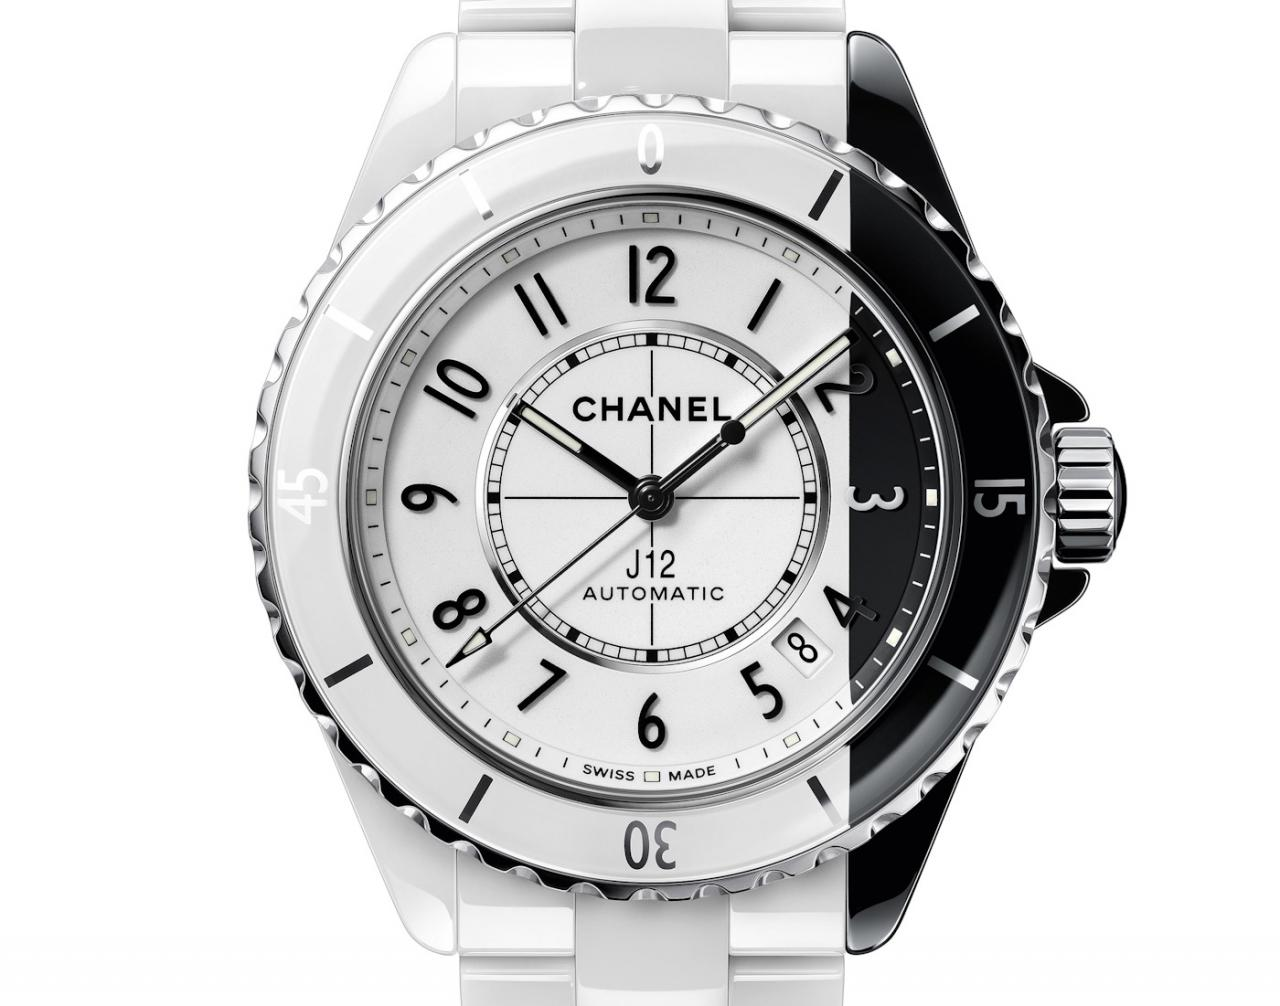 CChanel Debuts The World's First Fully Two-Tone Ceramic Watch With The J12 Paradoxe fake Watches